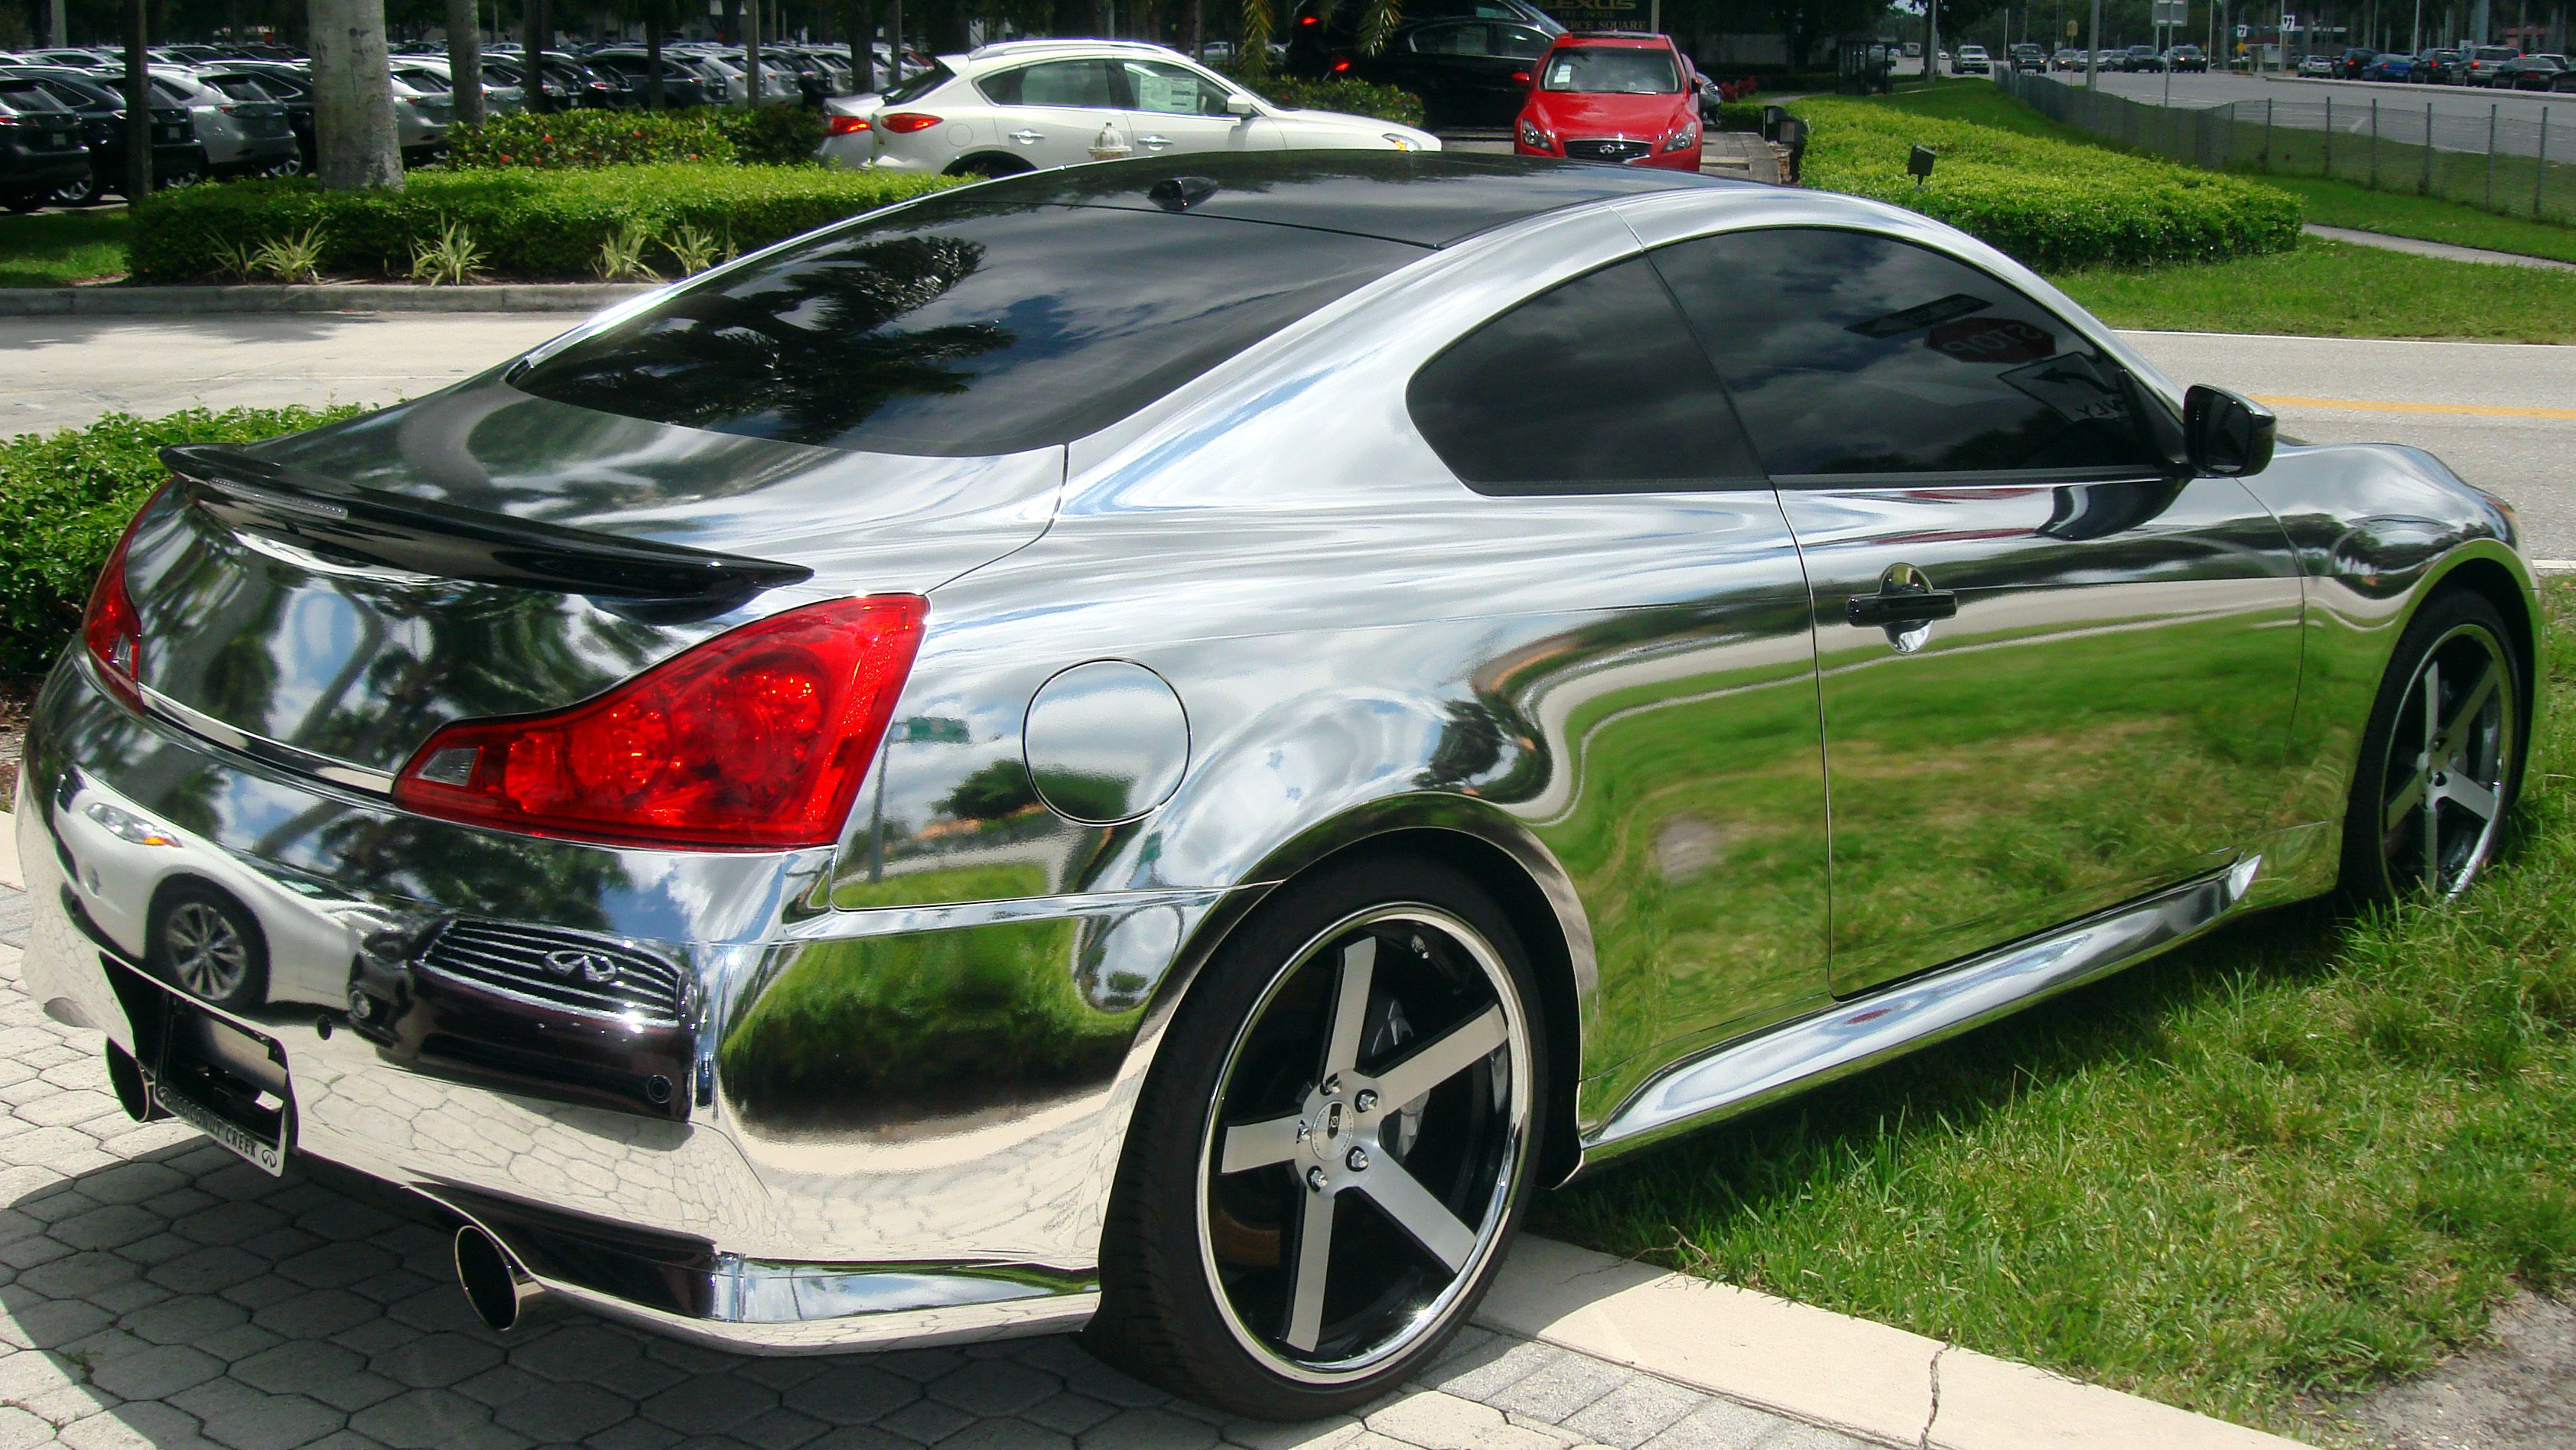 85 000 infiniti ipl g37 chrome wrap we spotted at our local dealer a while back what the. Black Bedroom Furniture Sets. Home Design Ideas